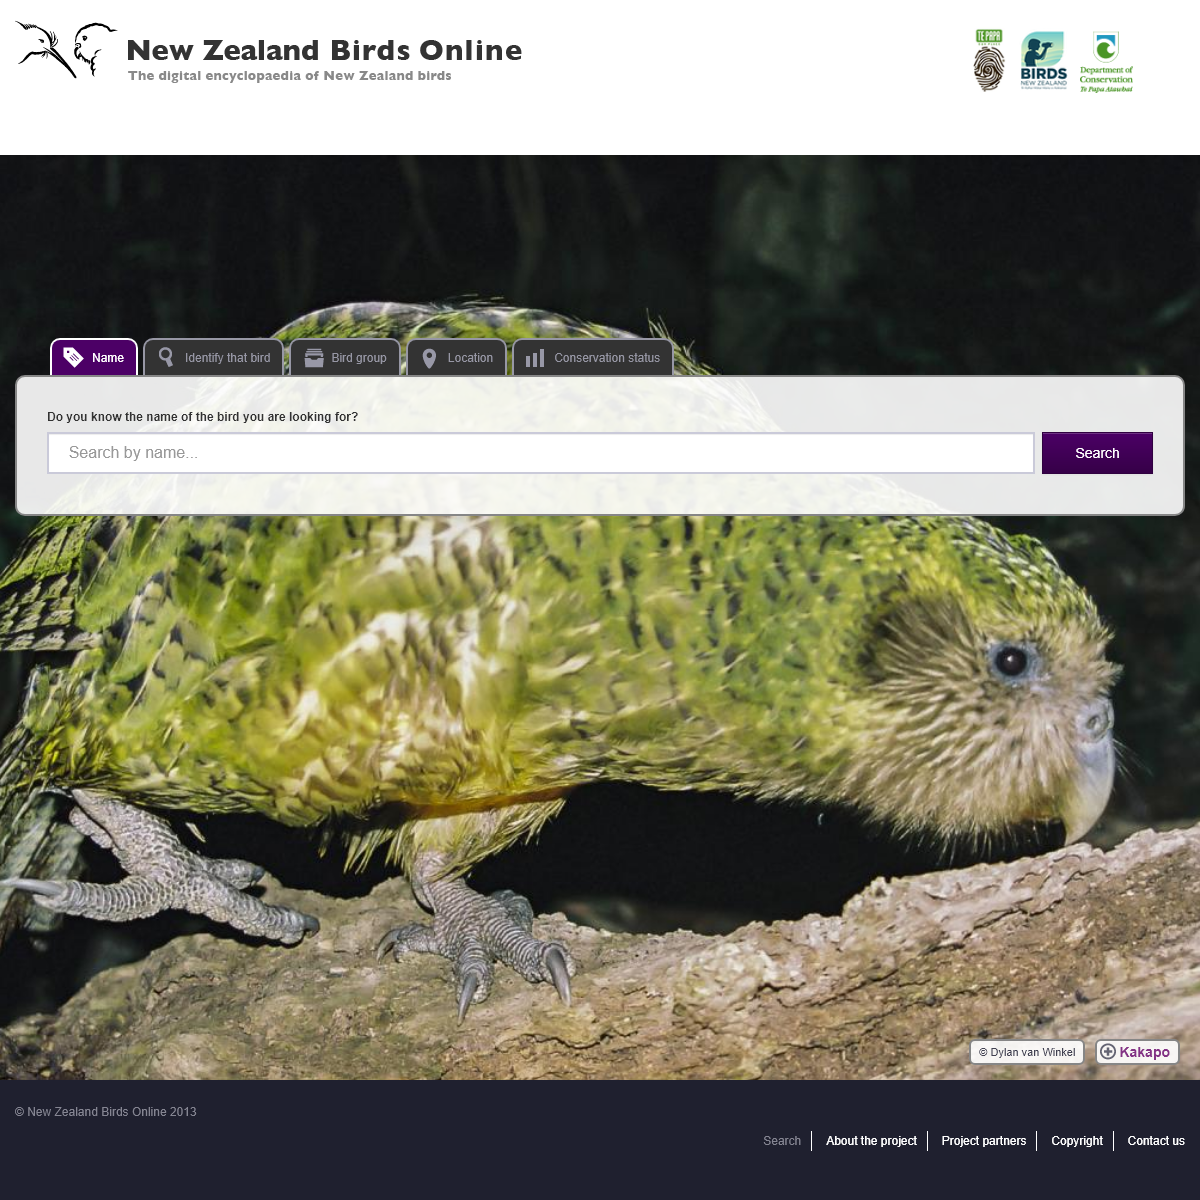 Home page - New Zealand Birds Online